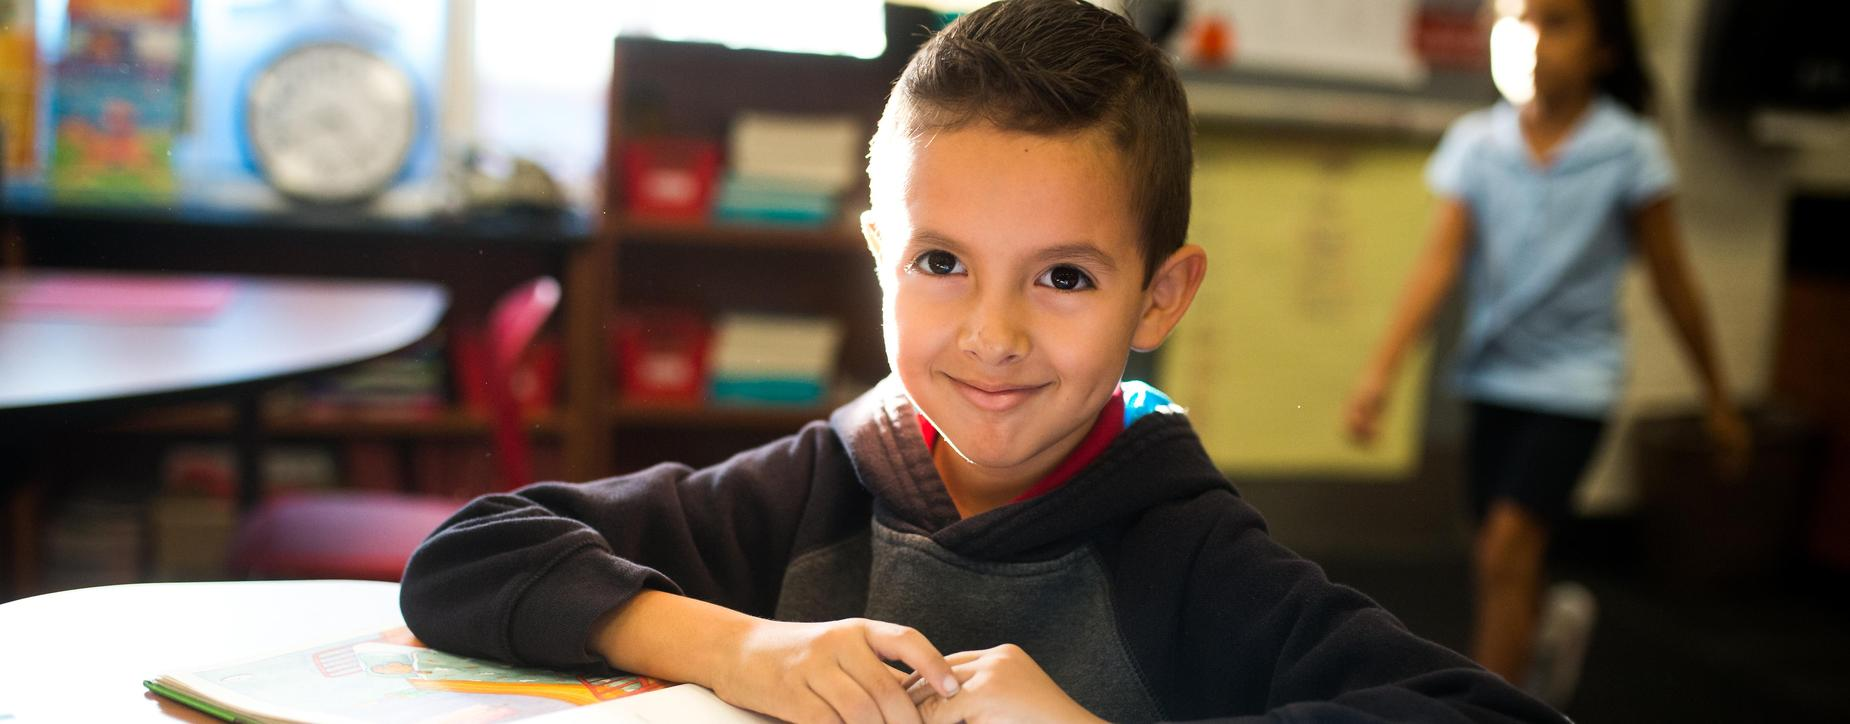 smiling boy at desk